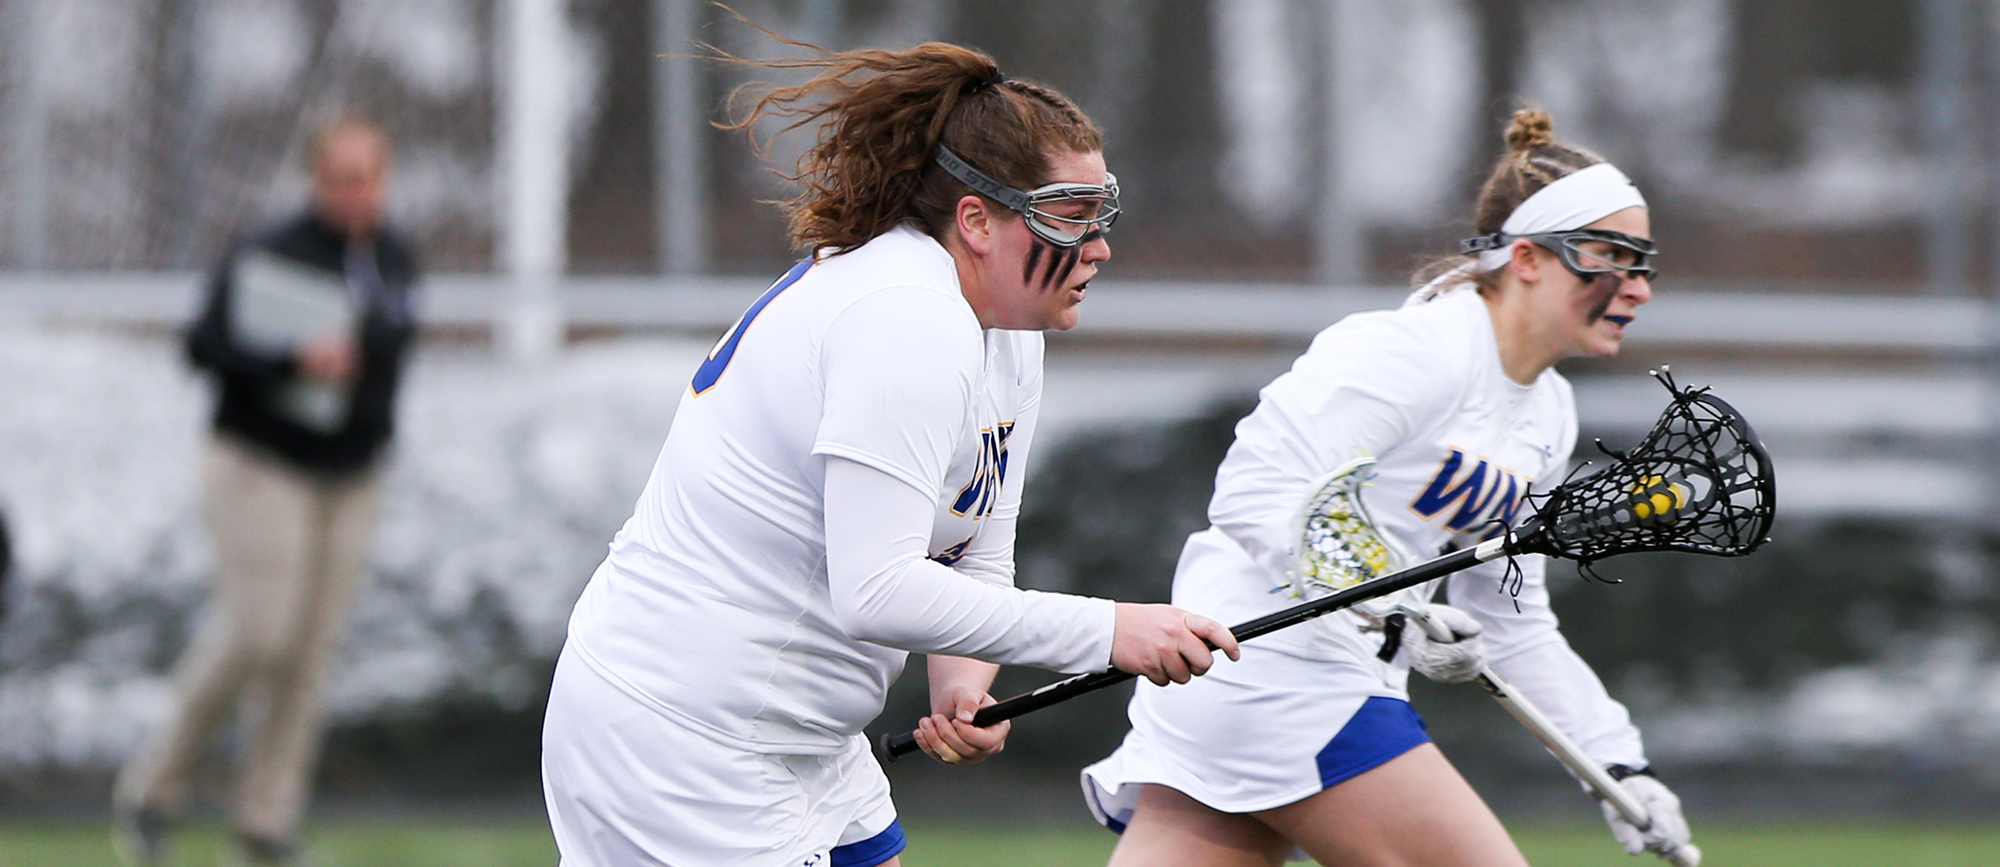 Eileen Ruby recorded six points in Western New England's 10-8 loss to WestConn on Monday. (Photo by Chris Marion)